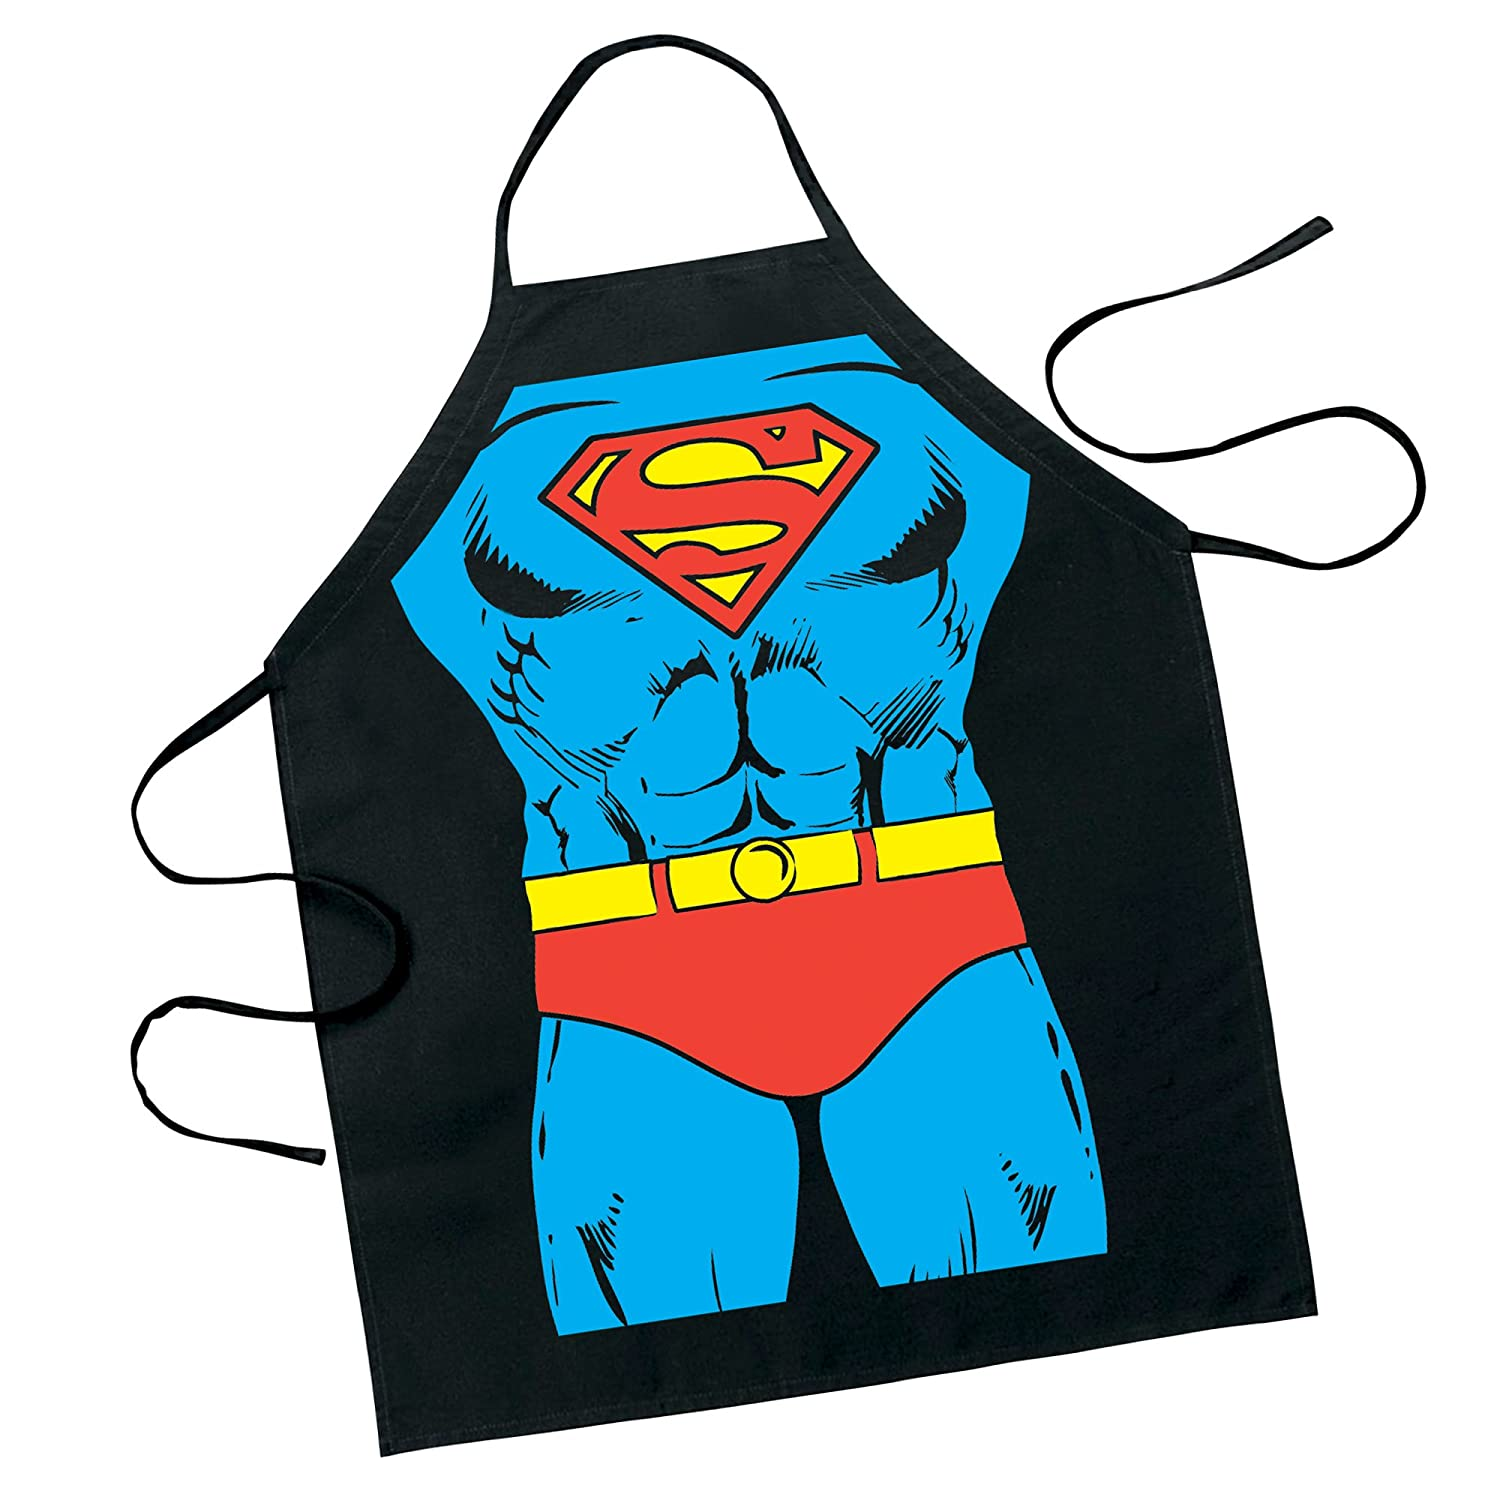 ICUP DC Comics Batgirl Be The Character Apron ICUP Inc 07280